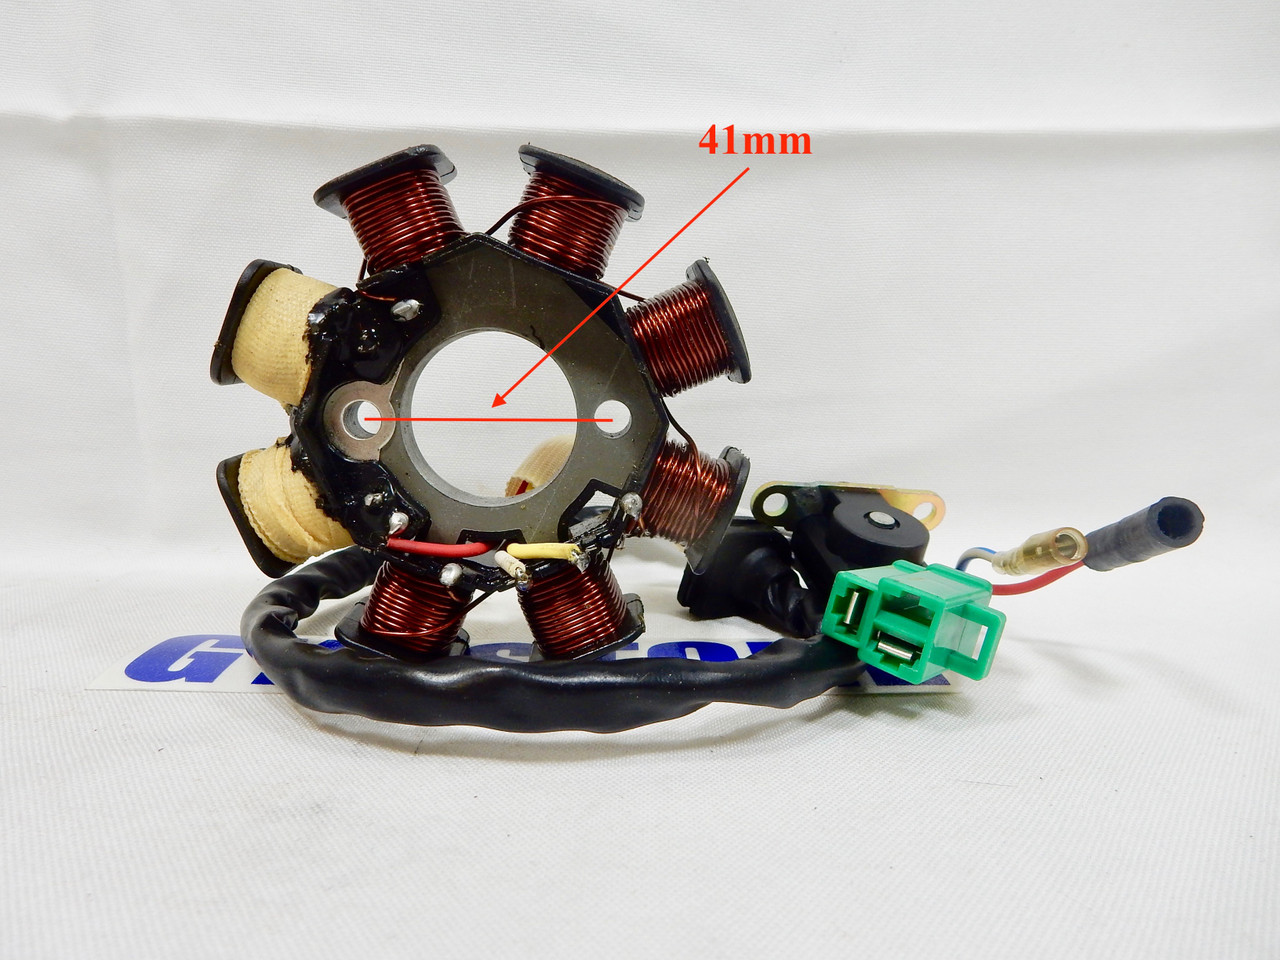 50cc - 100cc QMB139 PERFORMANCE AC 8 COIL MAGNETO STATOR FOR SCOOTERS (4  WIRE, 3 PLUG) *TYPE 3*